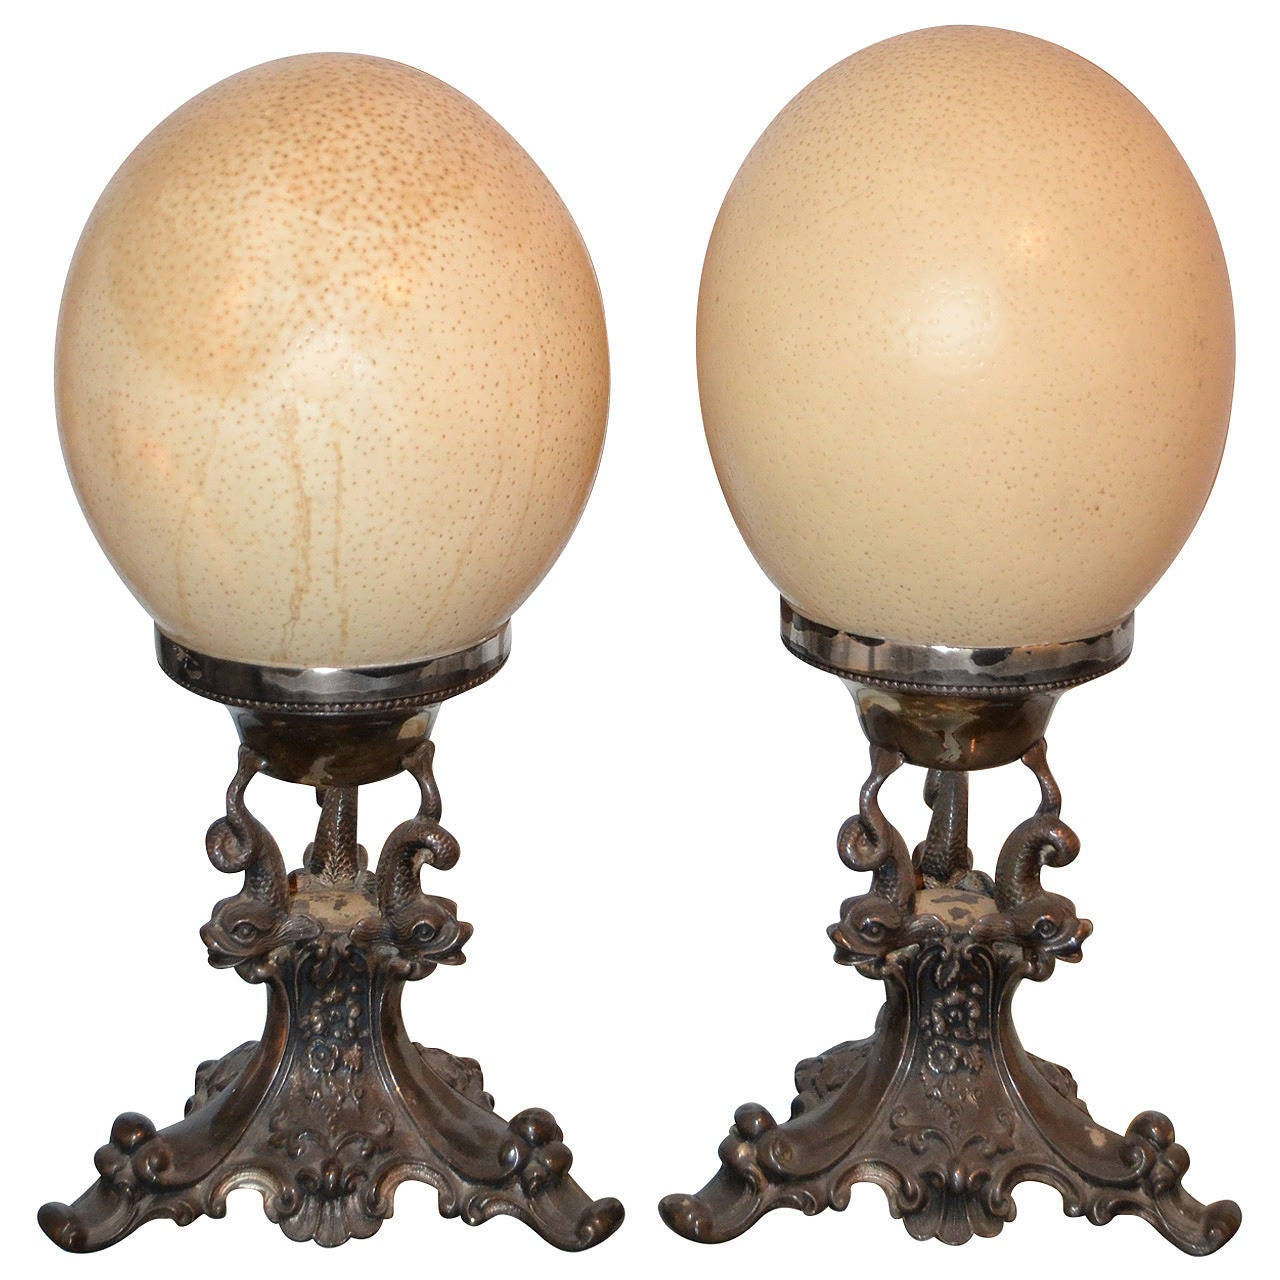 Anthony Redmile Ostrich Egg Finials